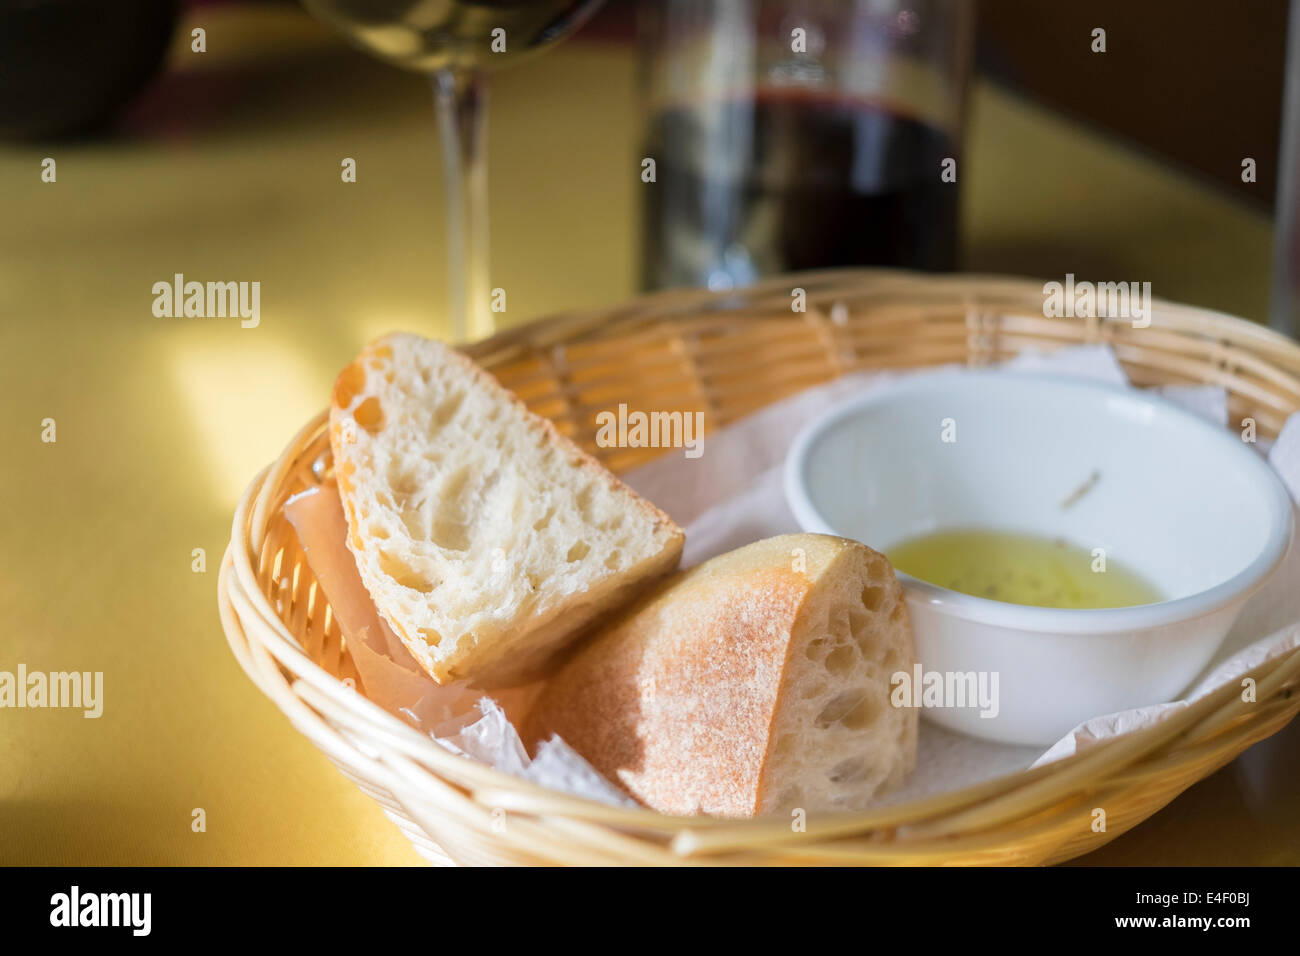 Italian food table setting with Ciabatta bread a bowl of garlic olive oil and red & Italian Table Setting Stock Photos u0026 Italian Table Setting Stock ...